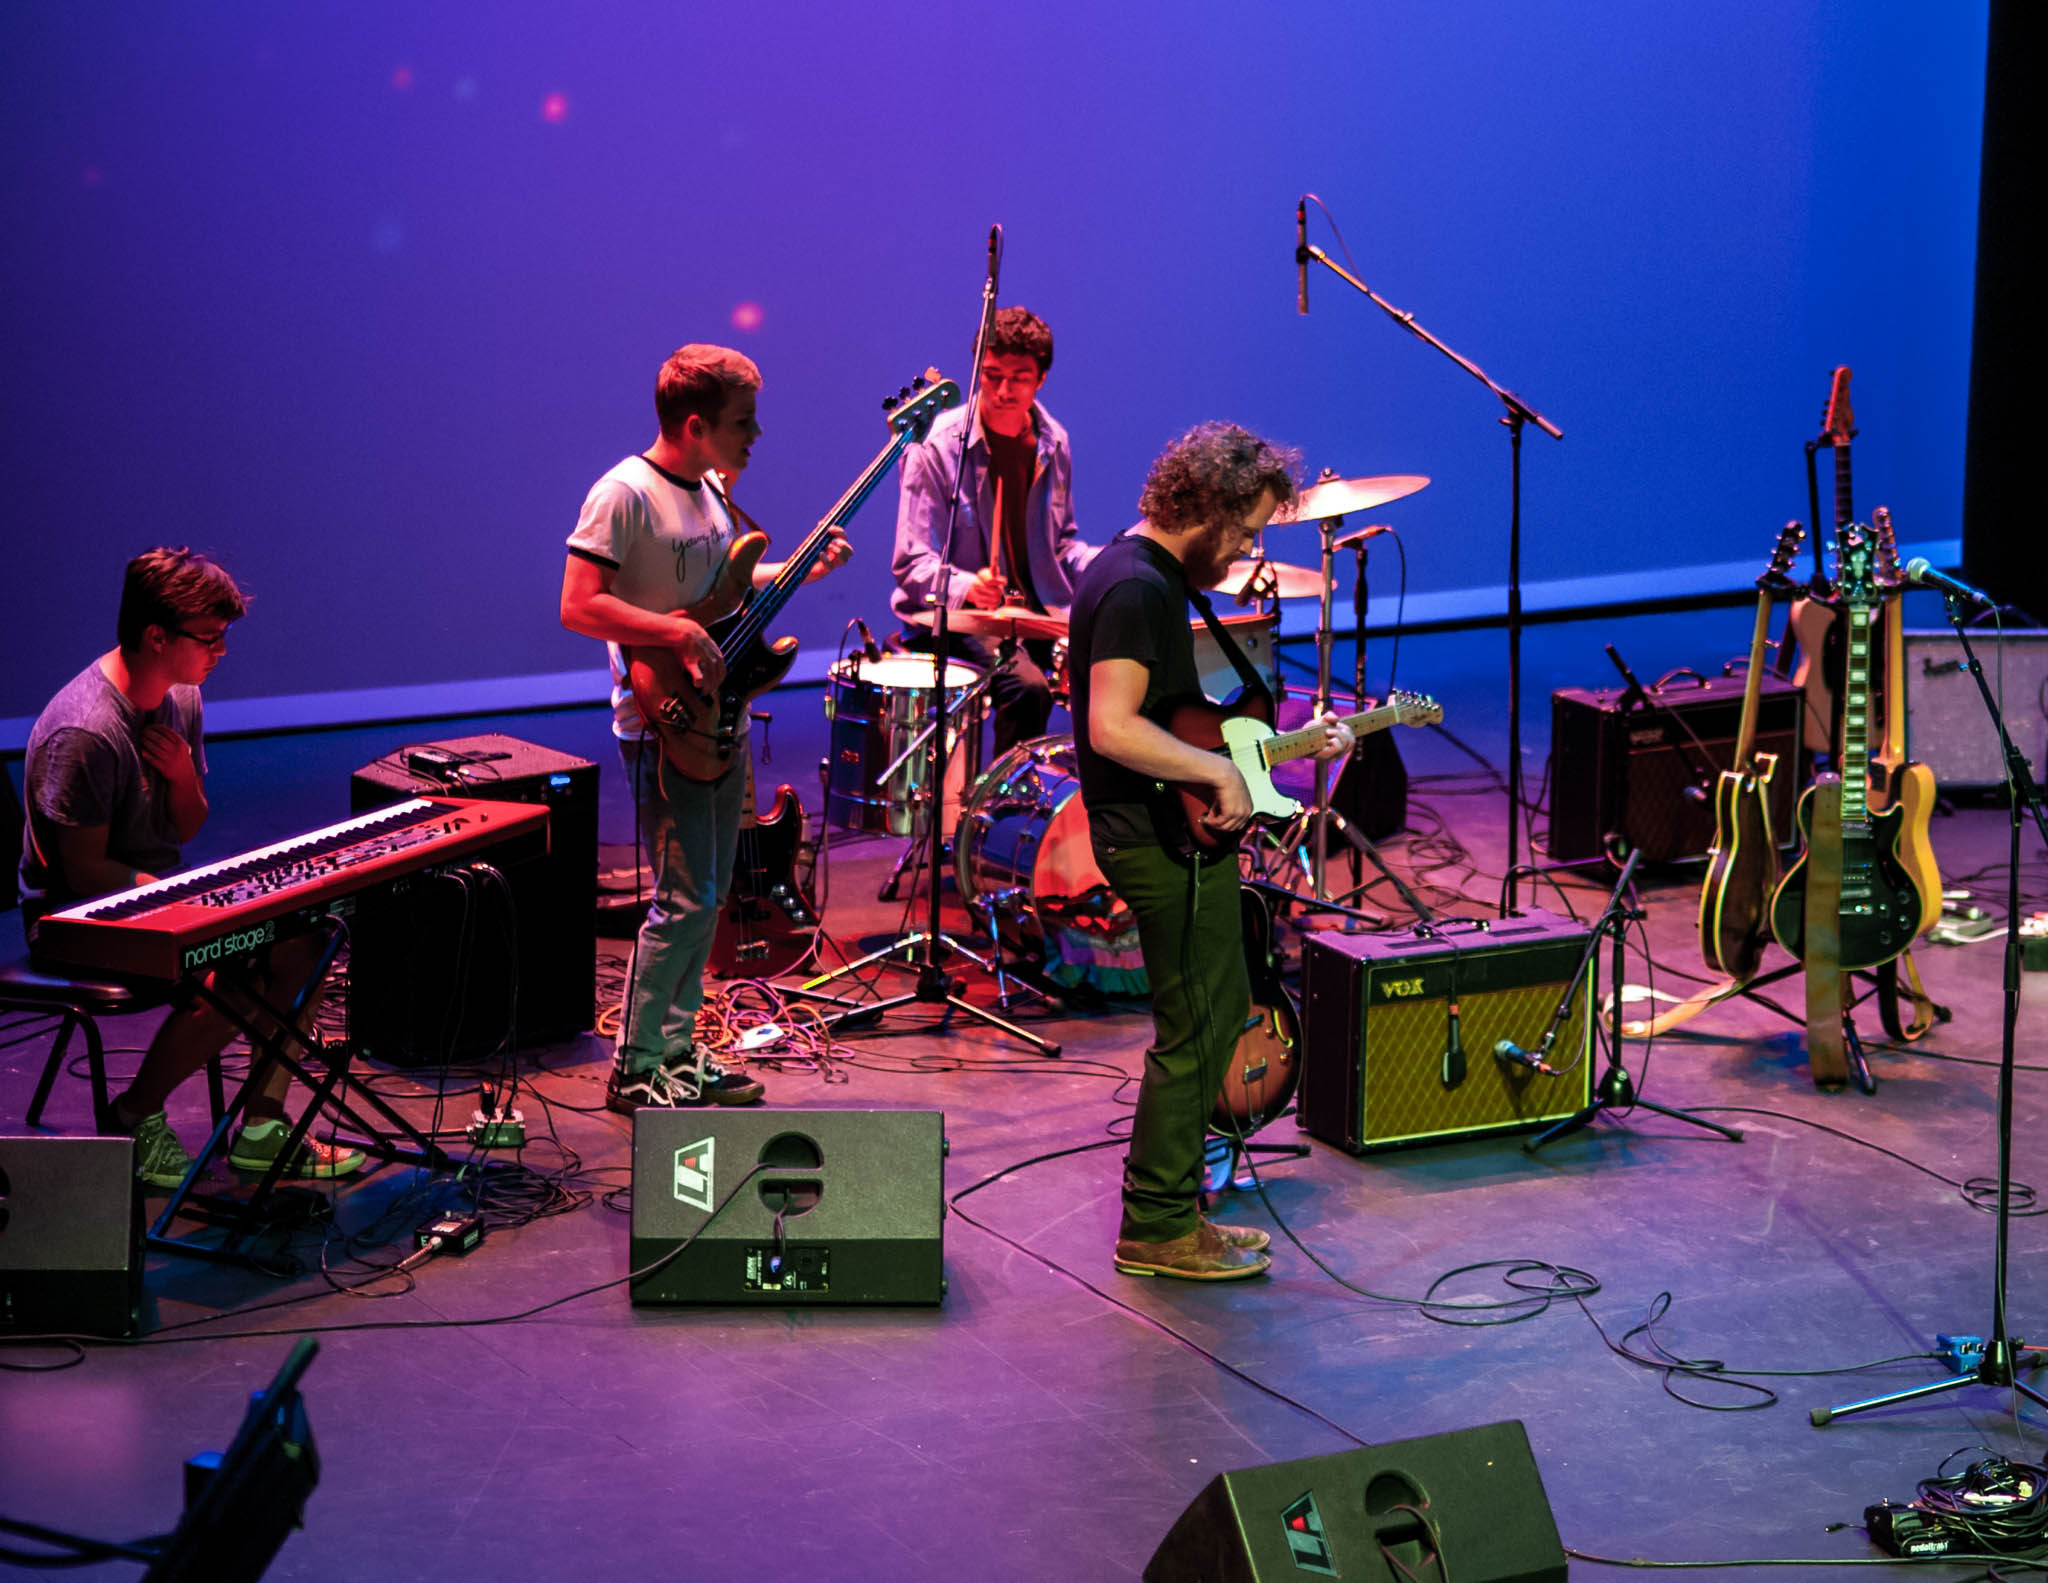 Young Charles playing at The Englert Theatre in Iowa City